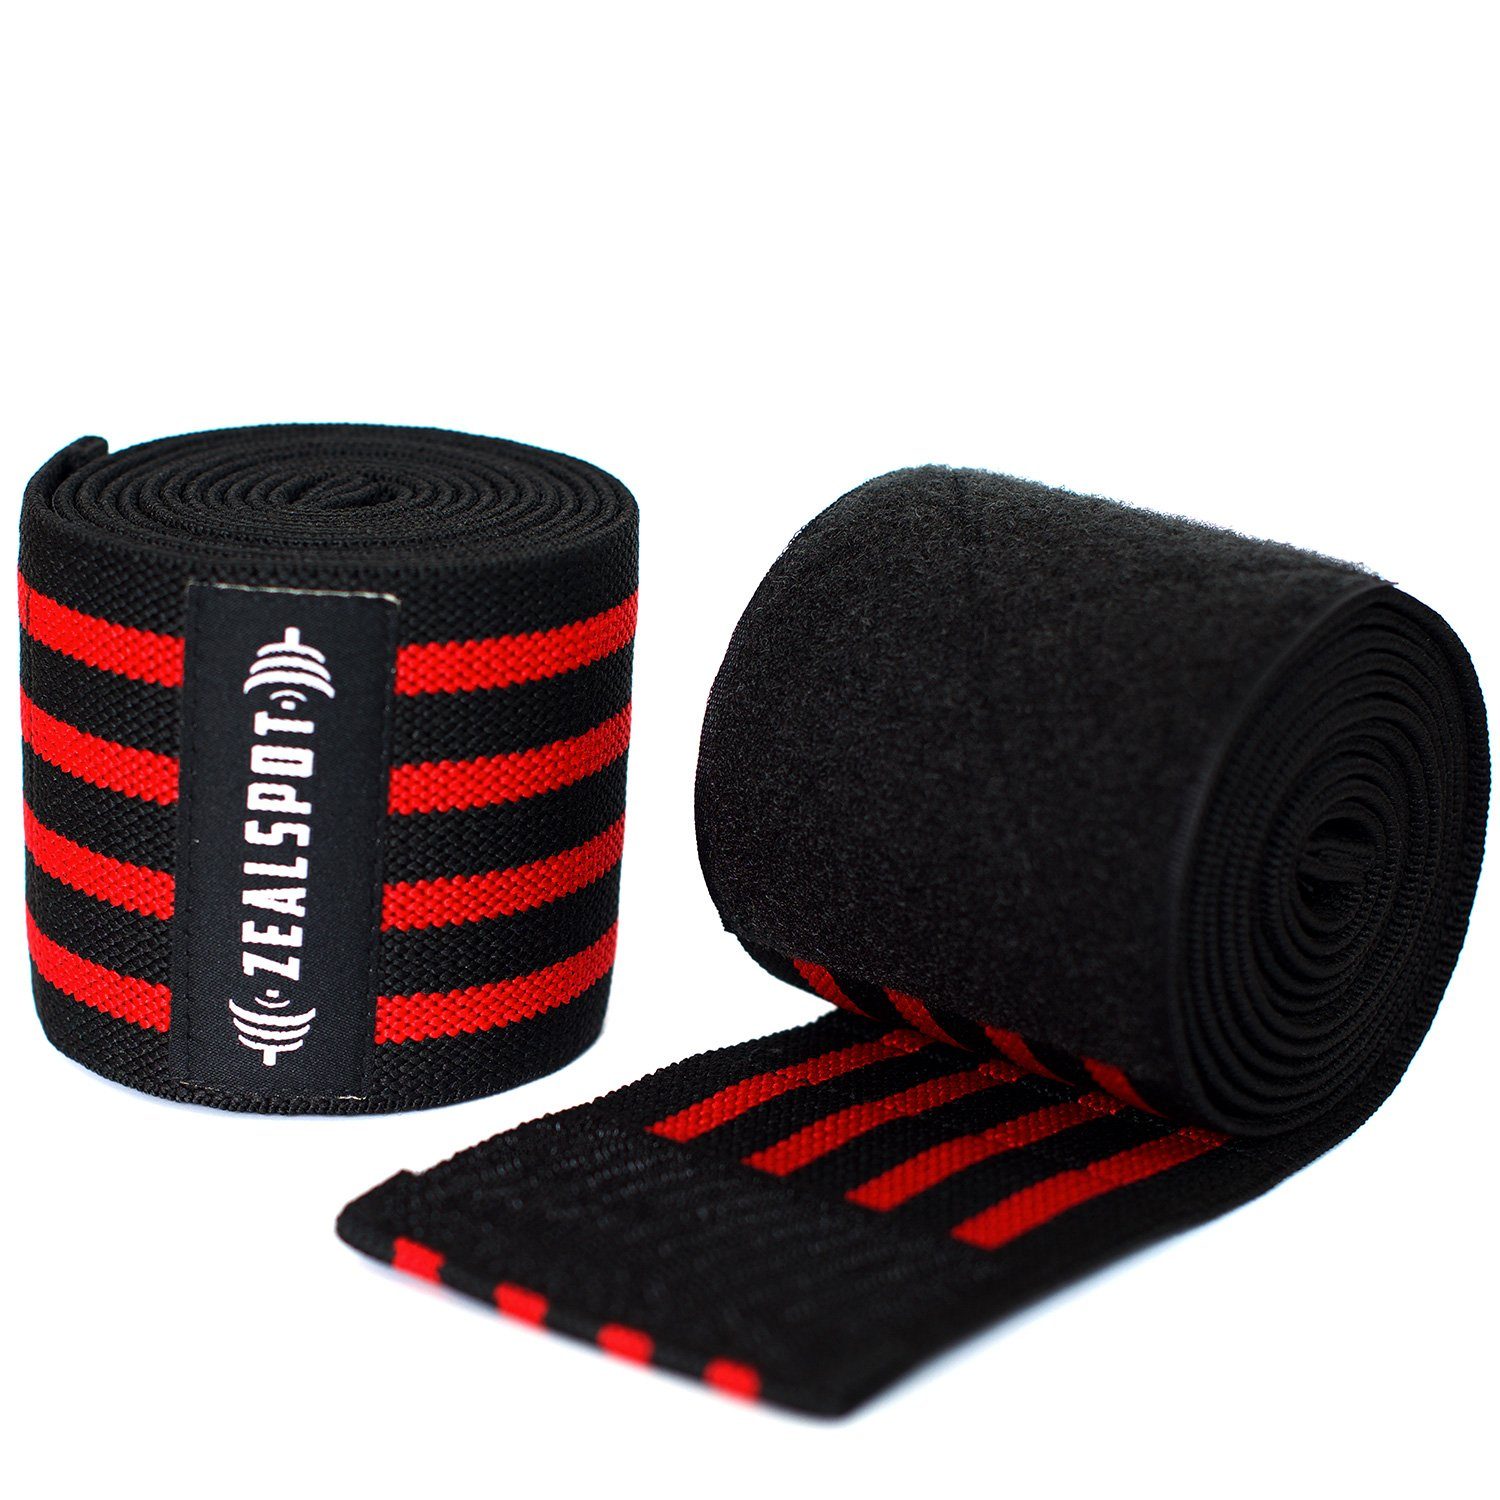 Compression & Elastic Support for Cross Training,WODs,Gym Best Knee Straps for Squats -for Men & Women- 72 Workout,Weightlifting,Fitness & Powerlifting Zealspot Knee Wraps Pair